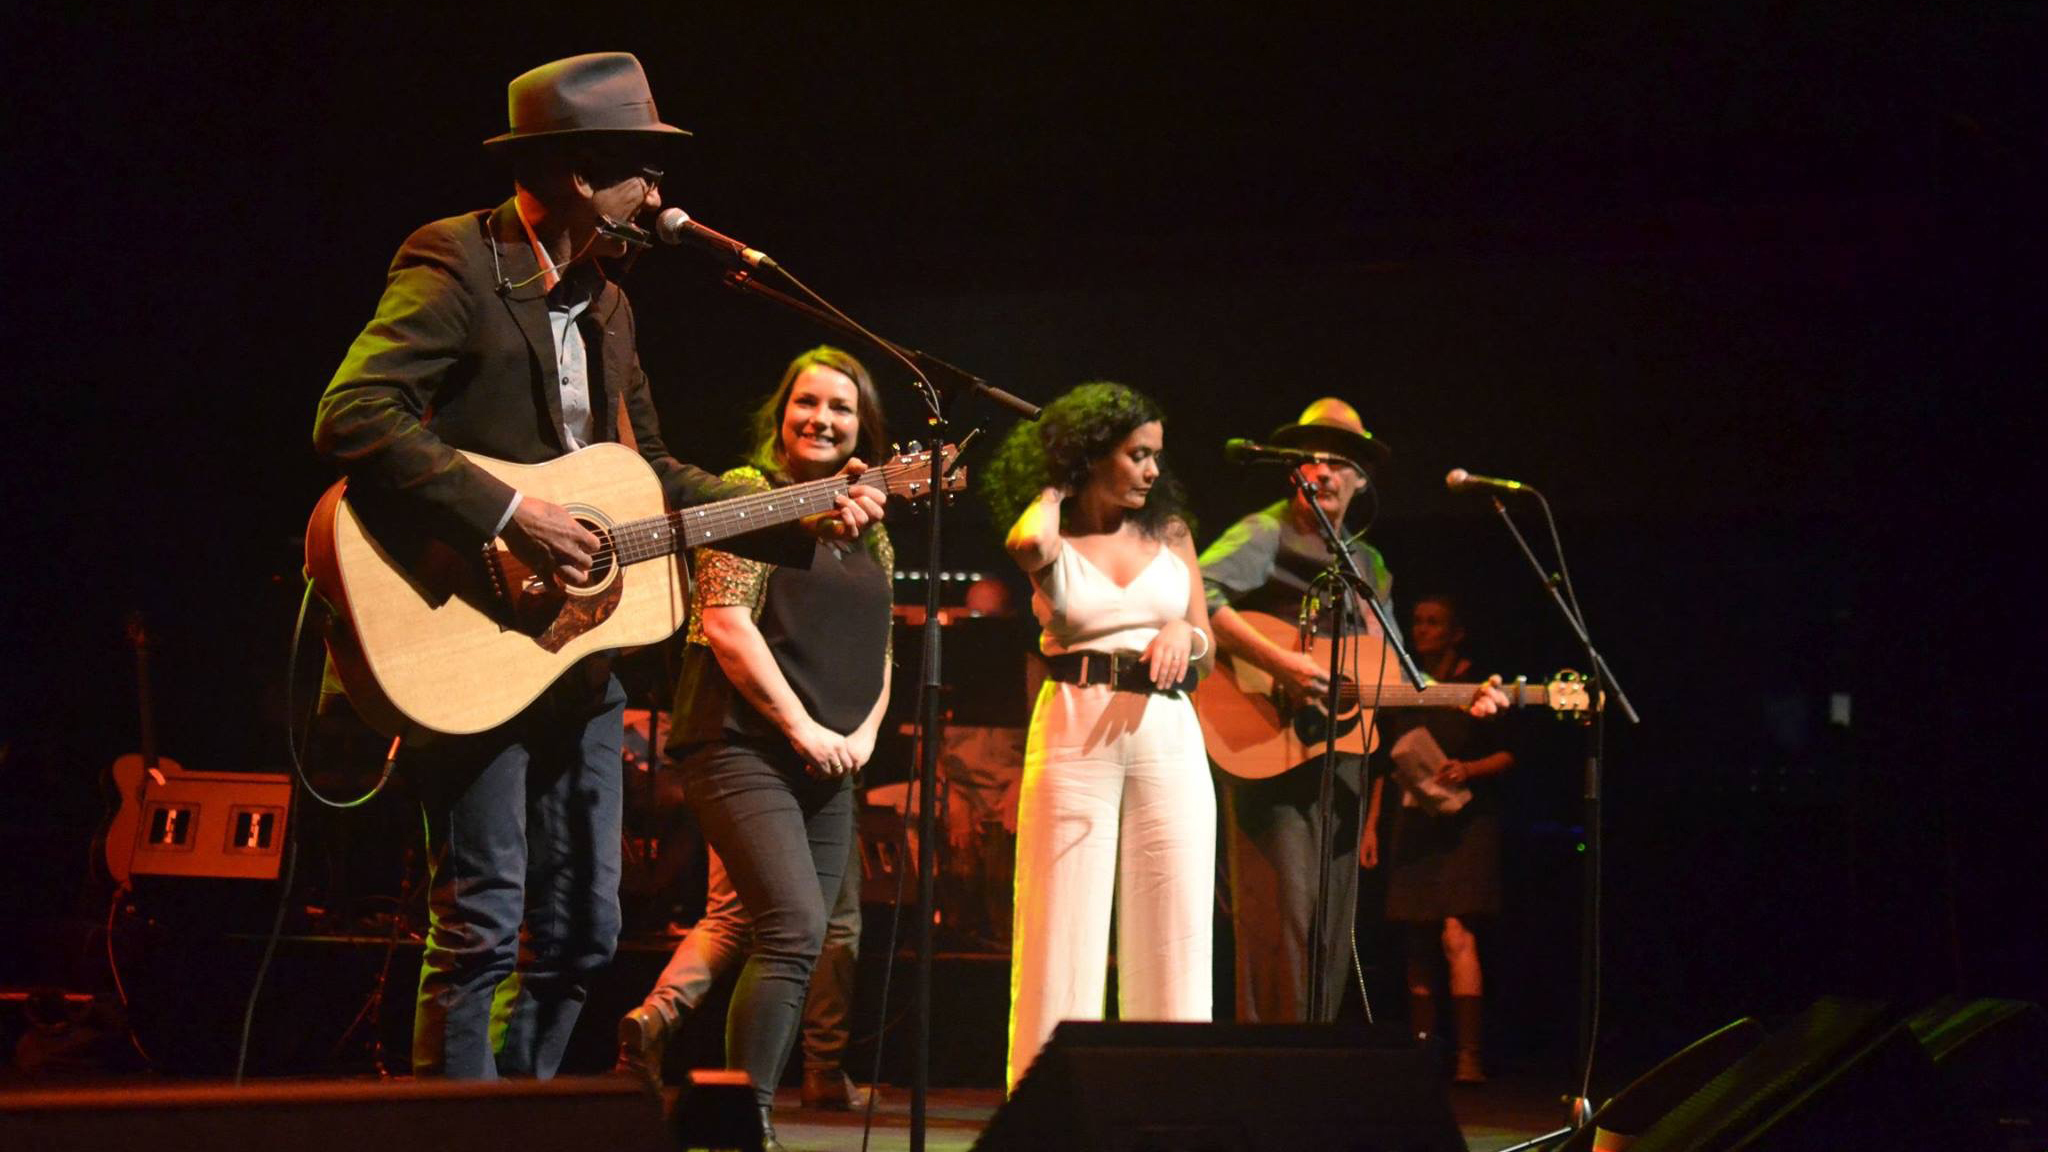 Paul Kelly, Pauline Scanlon, Leah Flanagan and Shane Howard onstage during dress rehearsal, Melbourne, February 2016. Photograph by Tim Chmeilewski.